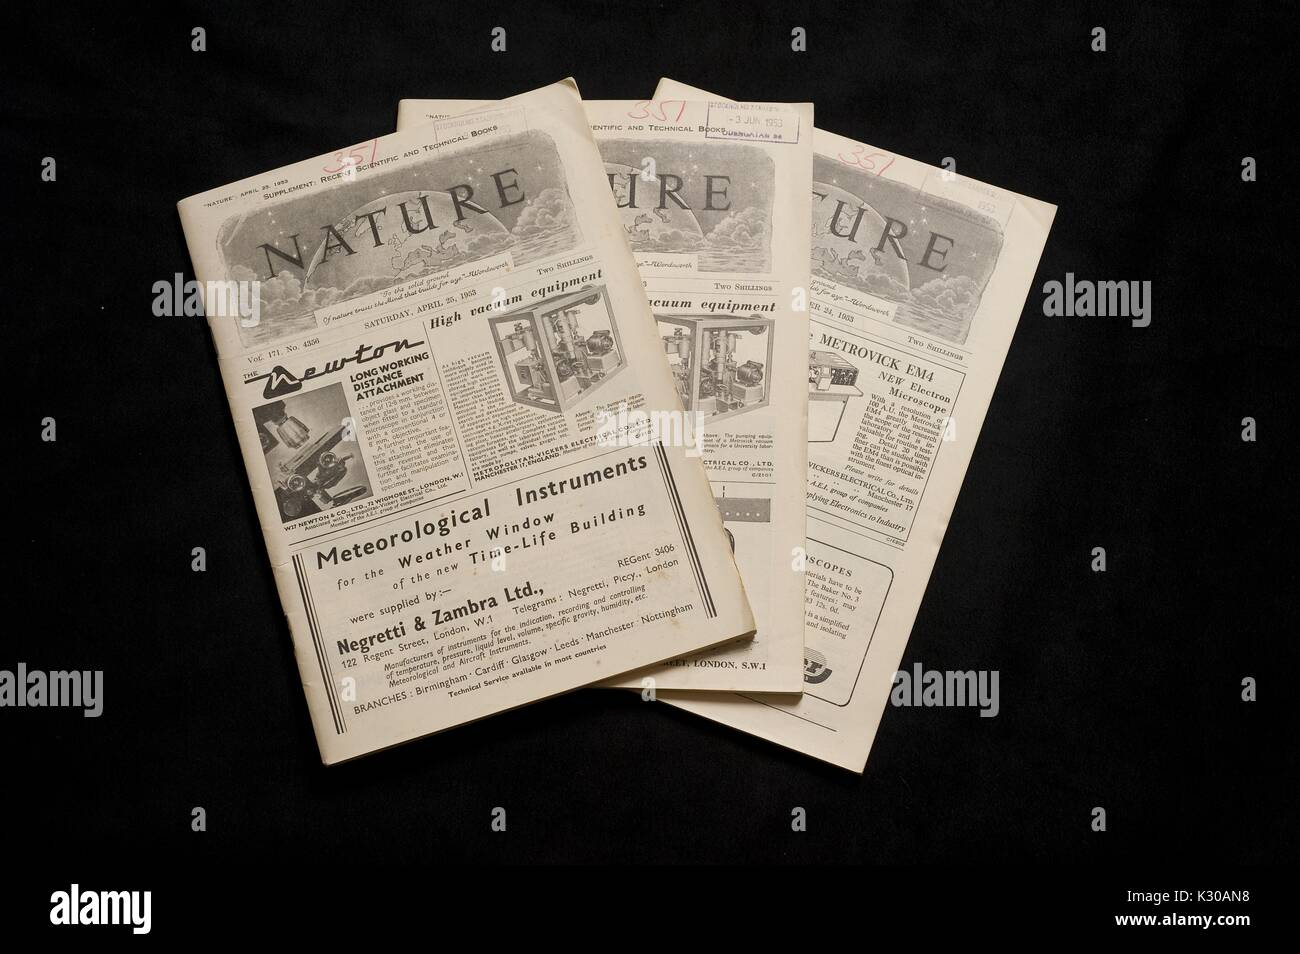 Three issues of Nature magazine containing the articles in which Watson and Crick first revealed the structure of DNA, in the Dr. Elliott and Eileen Hinkes Collection of Rare Books of Scientific Discovery housed in the Sheridan Libraries of Johns Hopkins University, 2010. - Stock Image